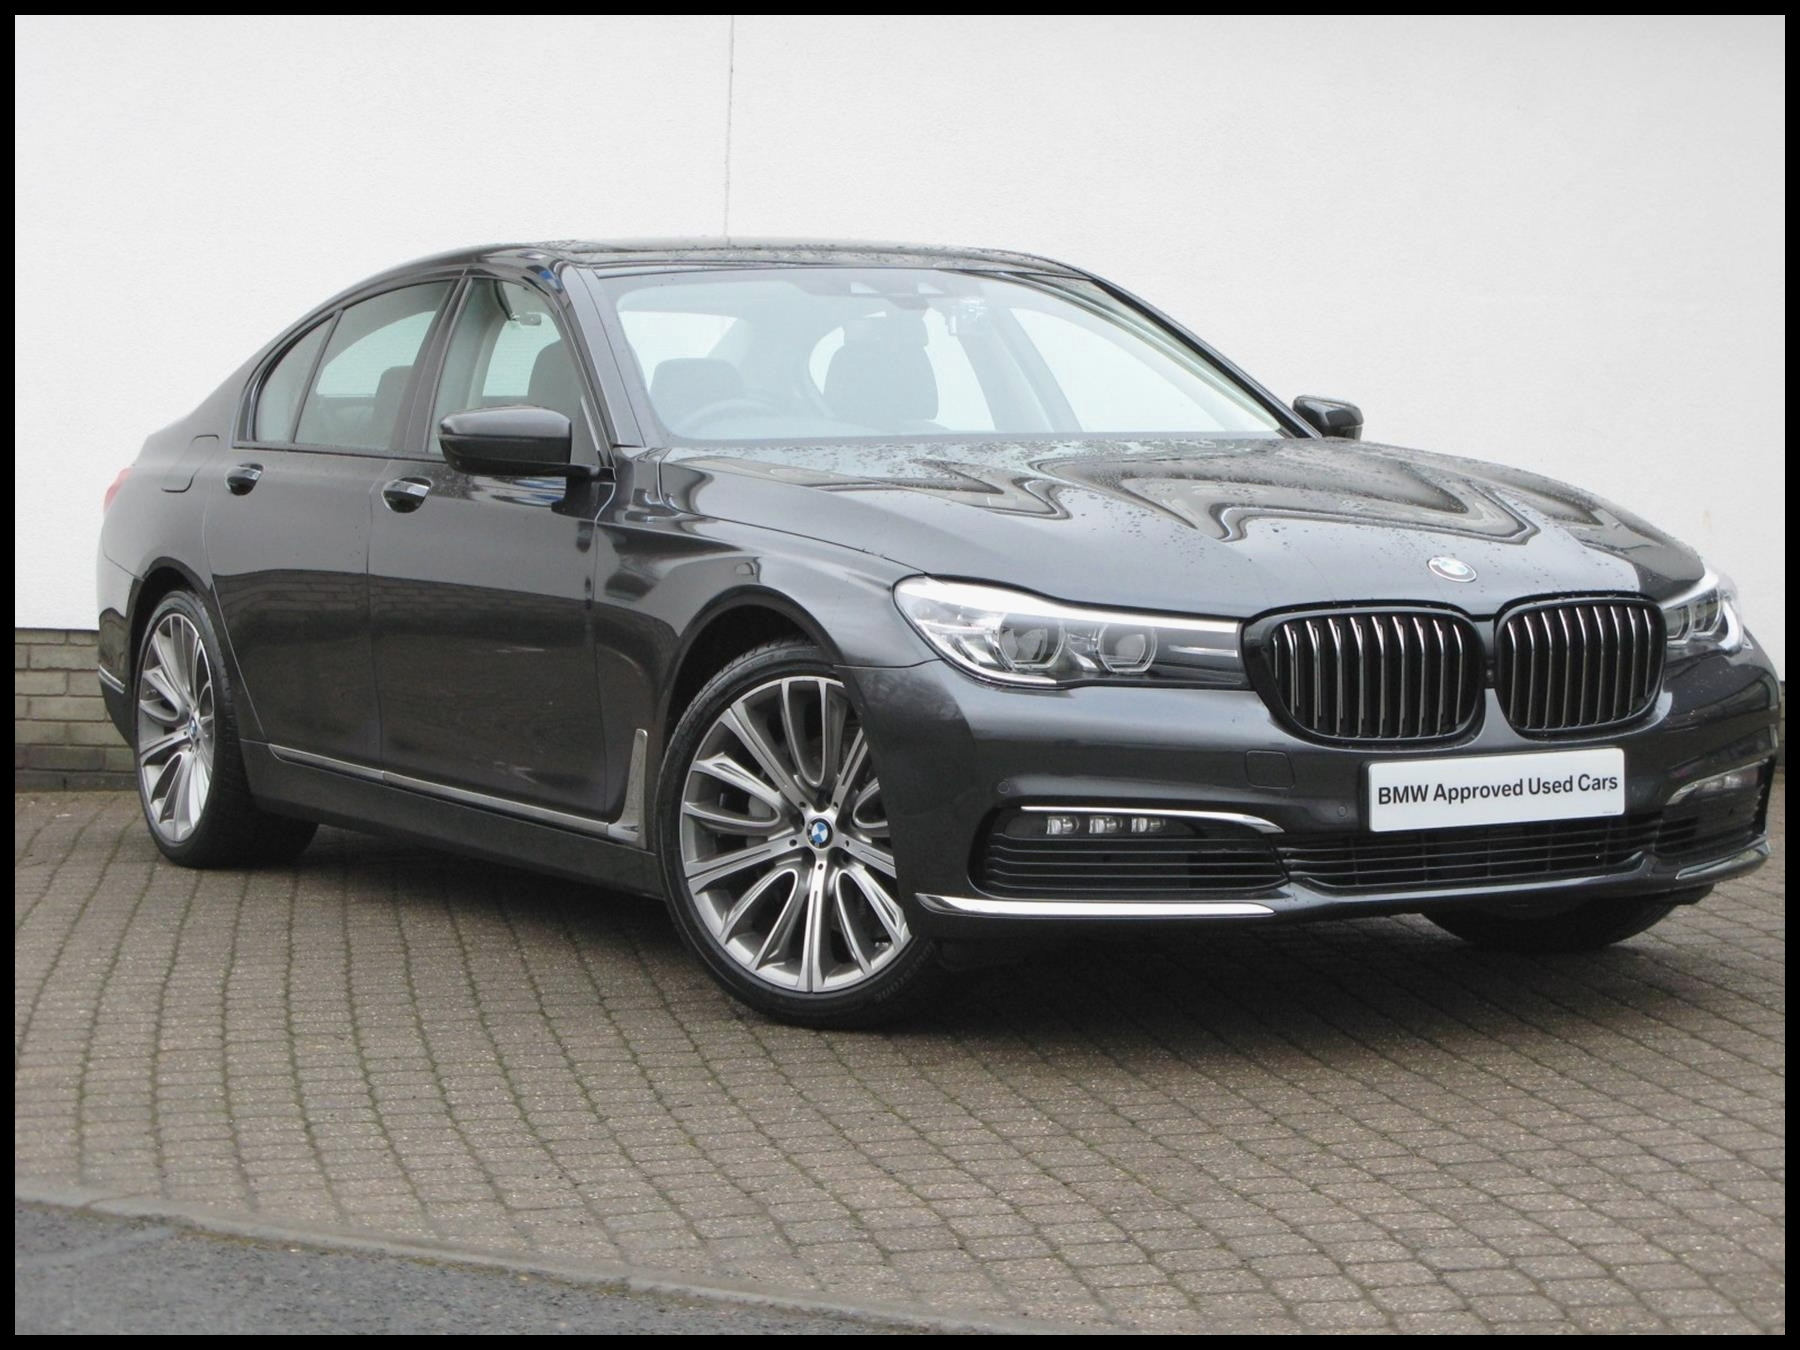 Used Bmw Okc Lovely Bmw 7 Series for Sale Awesome Used 2017 Bmw 7 Series G11